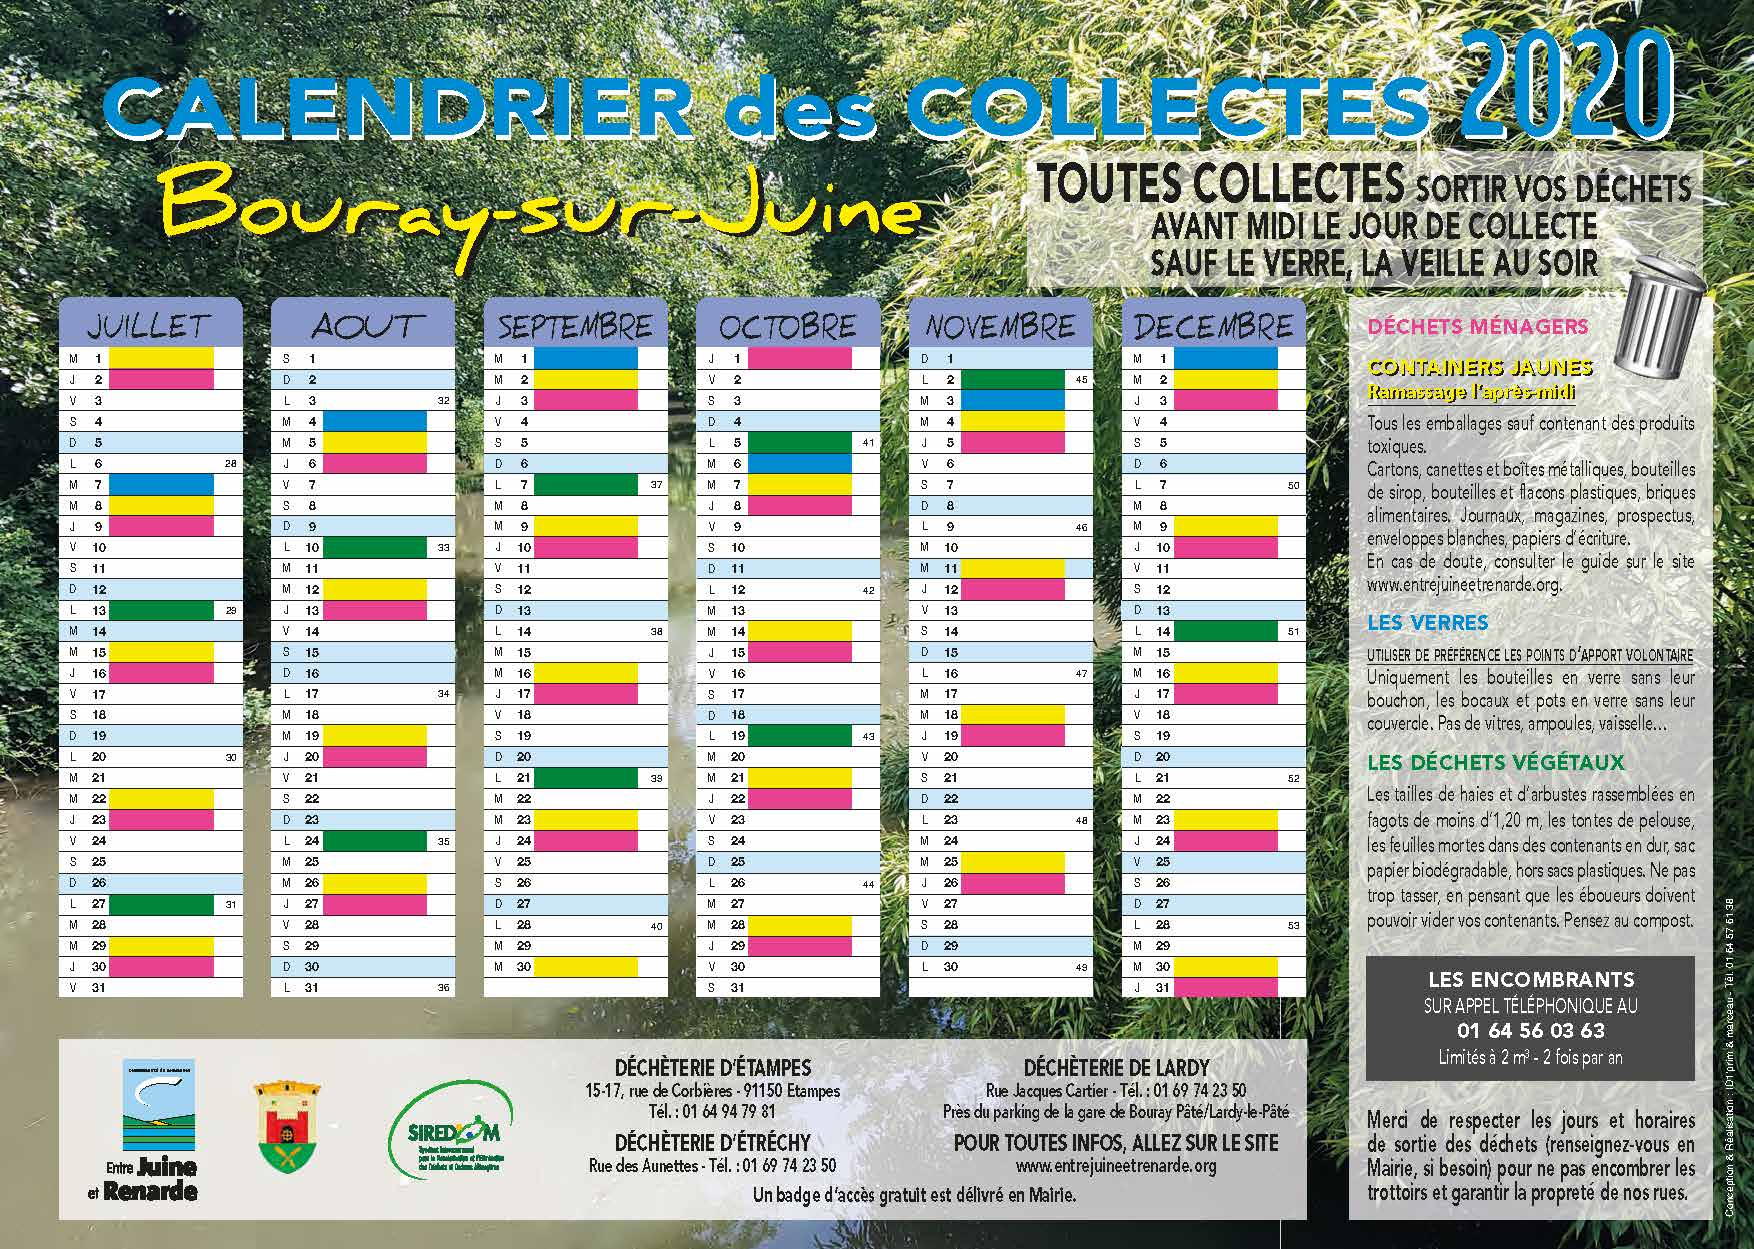 CCJR Calendrier Bouray sur Juine 2020 A4 Recto Verso Page 2